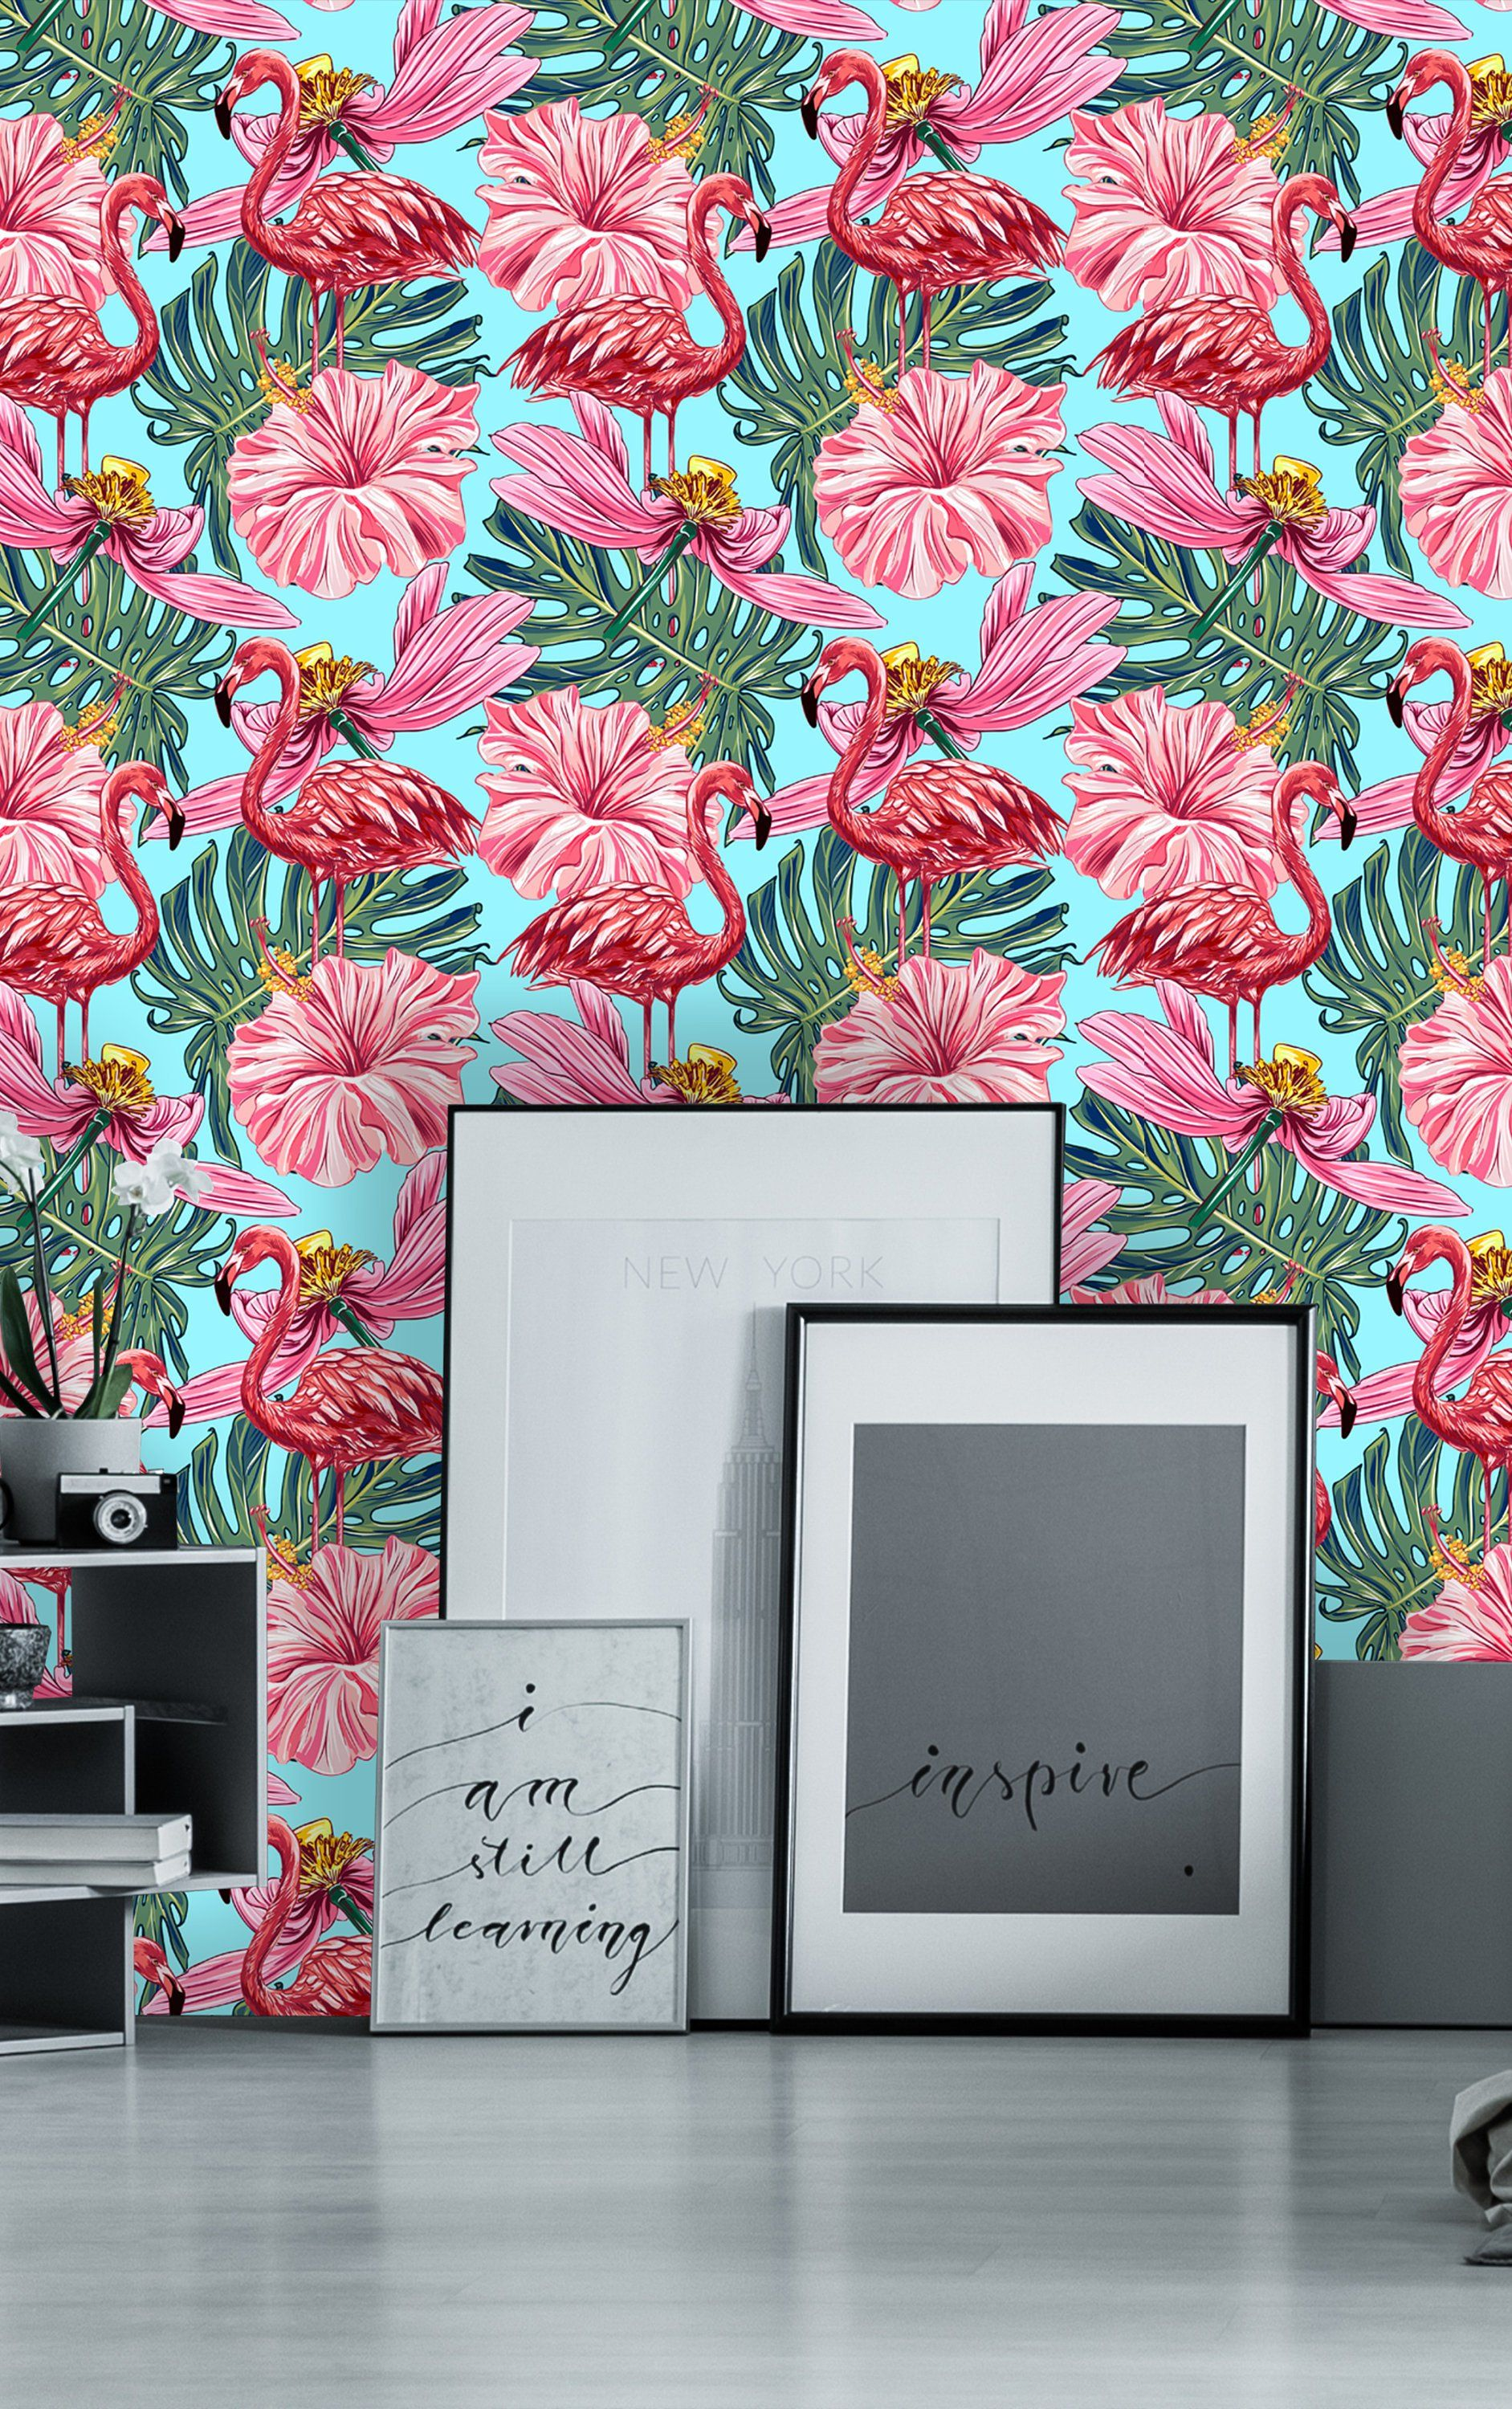 Removable Wallpaper Self Adhesive Wallpaper Pink Flamingos Tropical Flowers And Jungle Leaves P Peel And Stick Wallpaper Wallpaper Roll Self Adhesive Wallpaper